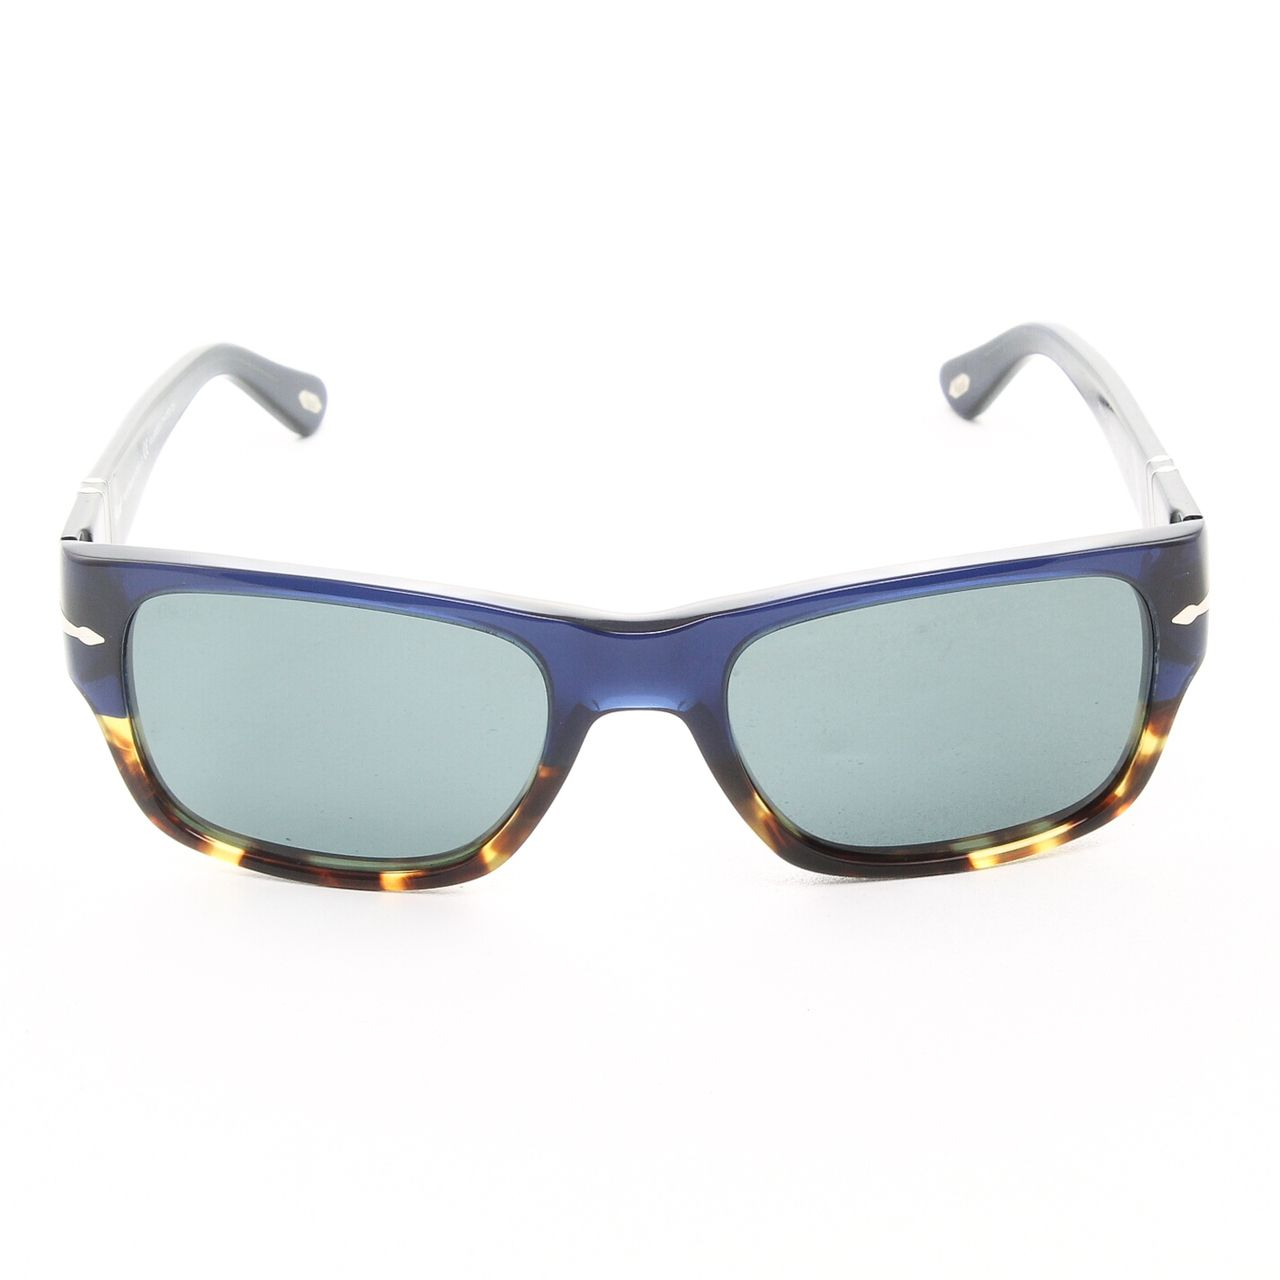 8c099a9d5a215 PERSOL 3021 955 4N 53mm Sunglasses Blue Tortoise with Blue Polarized  Photochromic Lenses - Theaspecs.com